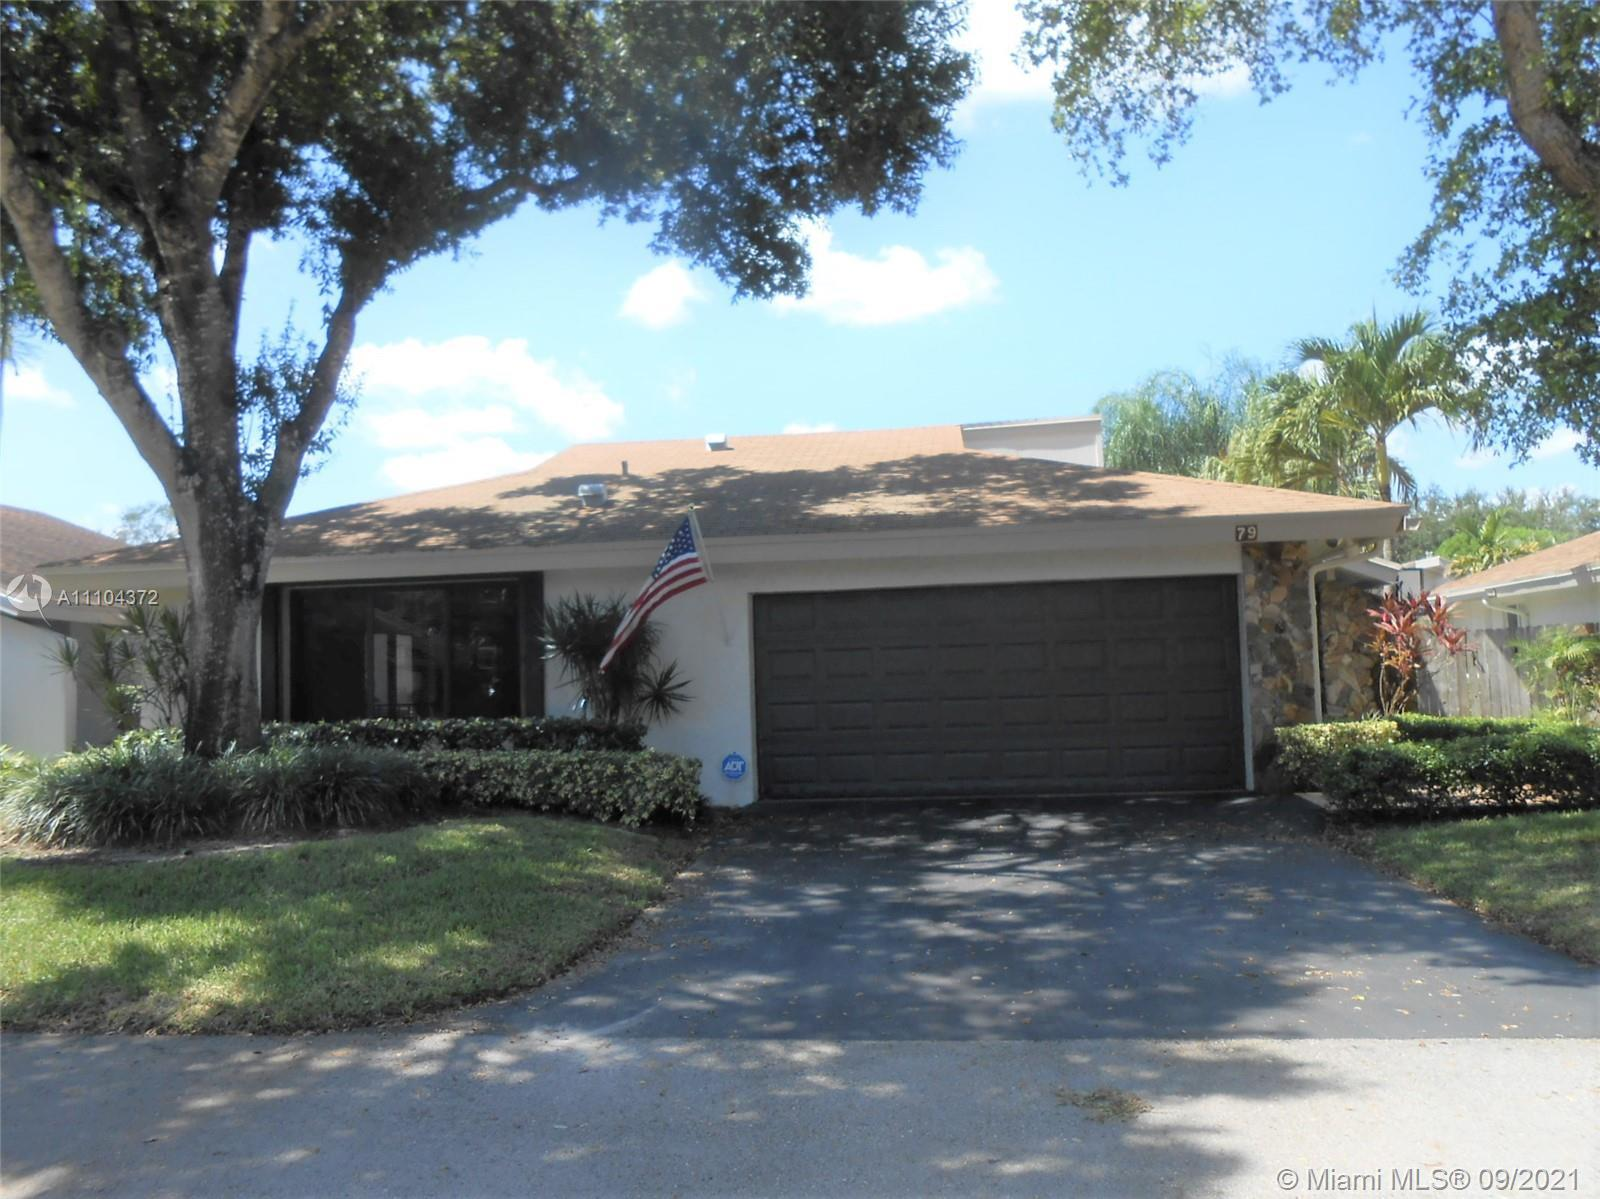 IMPECCABLE D MODEL WITH LARGE FAMILY ROOM!  TOTAL MOVE IN CONDITION. GATED COMMUNITY. REMODELED THRU